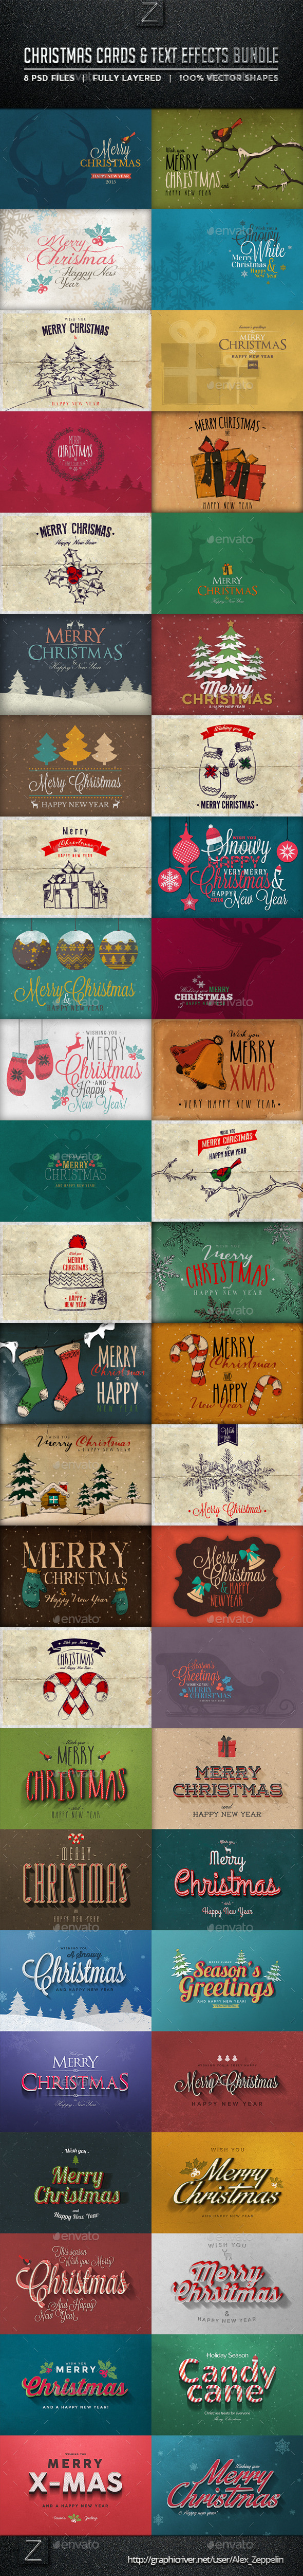 GraphicRiver Christmas Cards & Text Effects Bundle 9706360